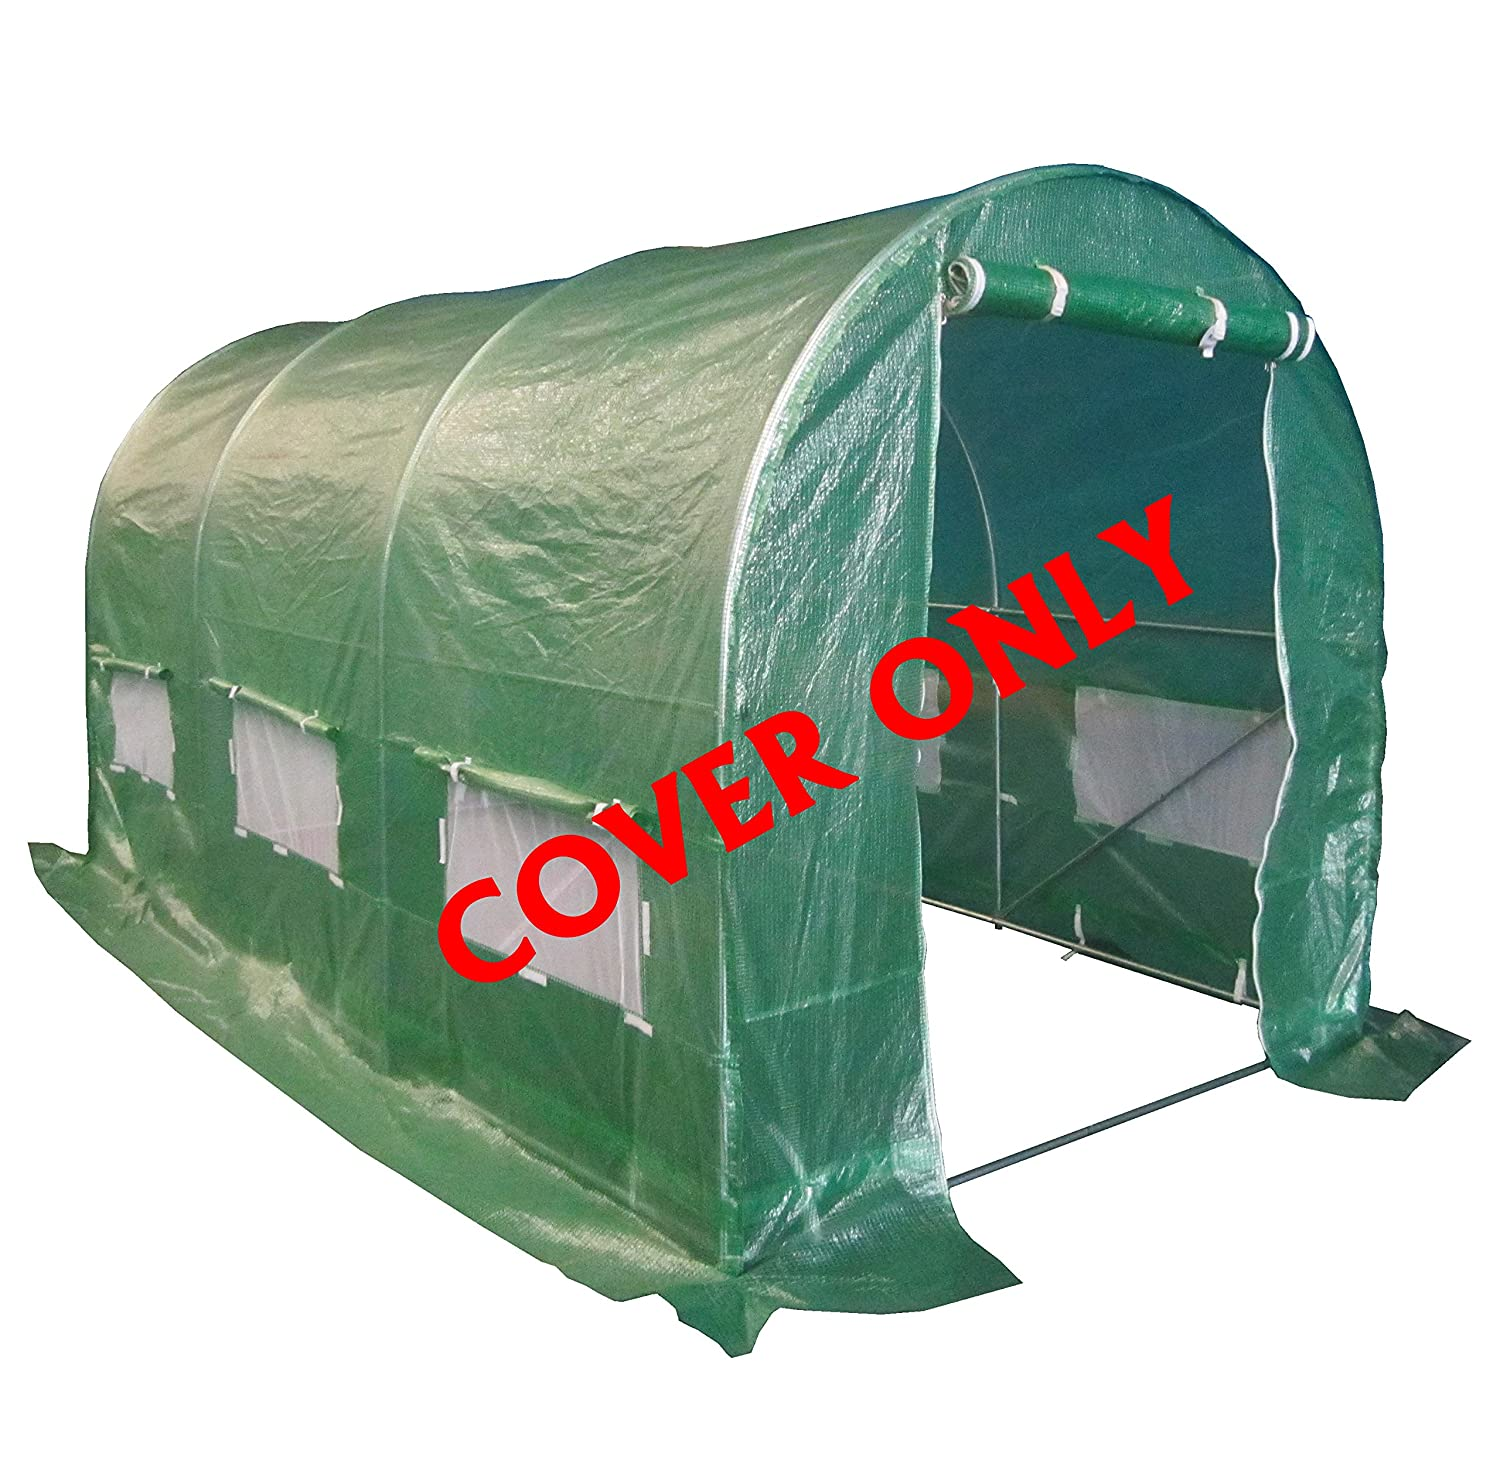 FoxHunter 4M(L) x 2M(W) x 2M(H) Polytunnel Greenhouse Pollytunnel Poly Polly Tunnel 3 Section Cover Only